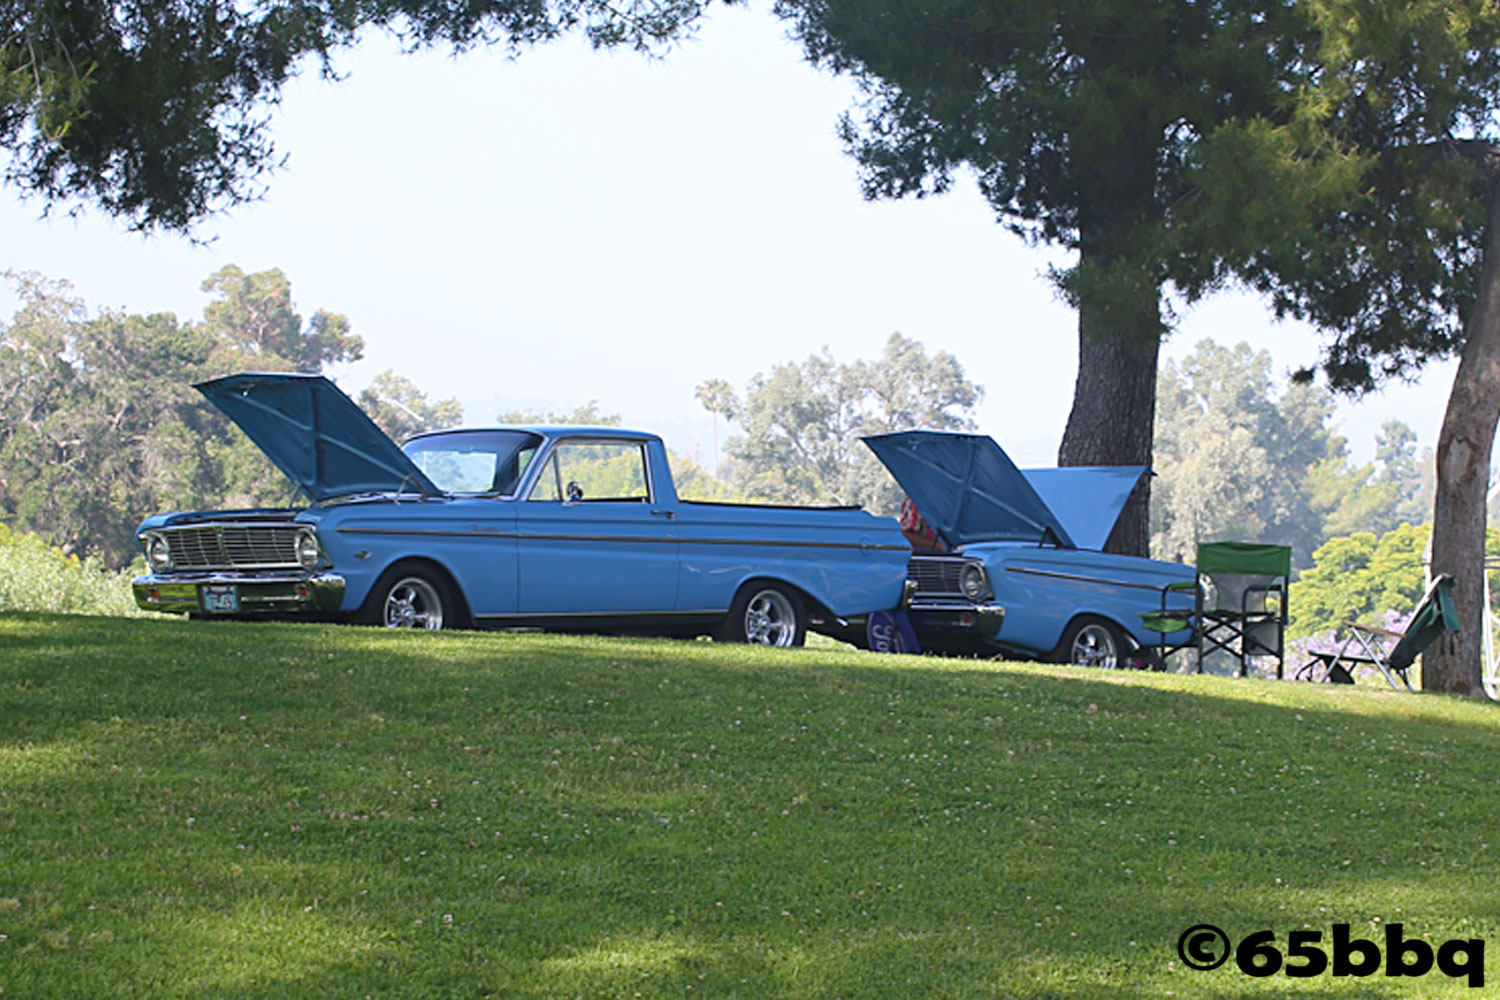 The Ranchero and the Blue Q